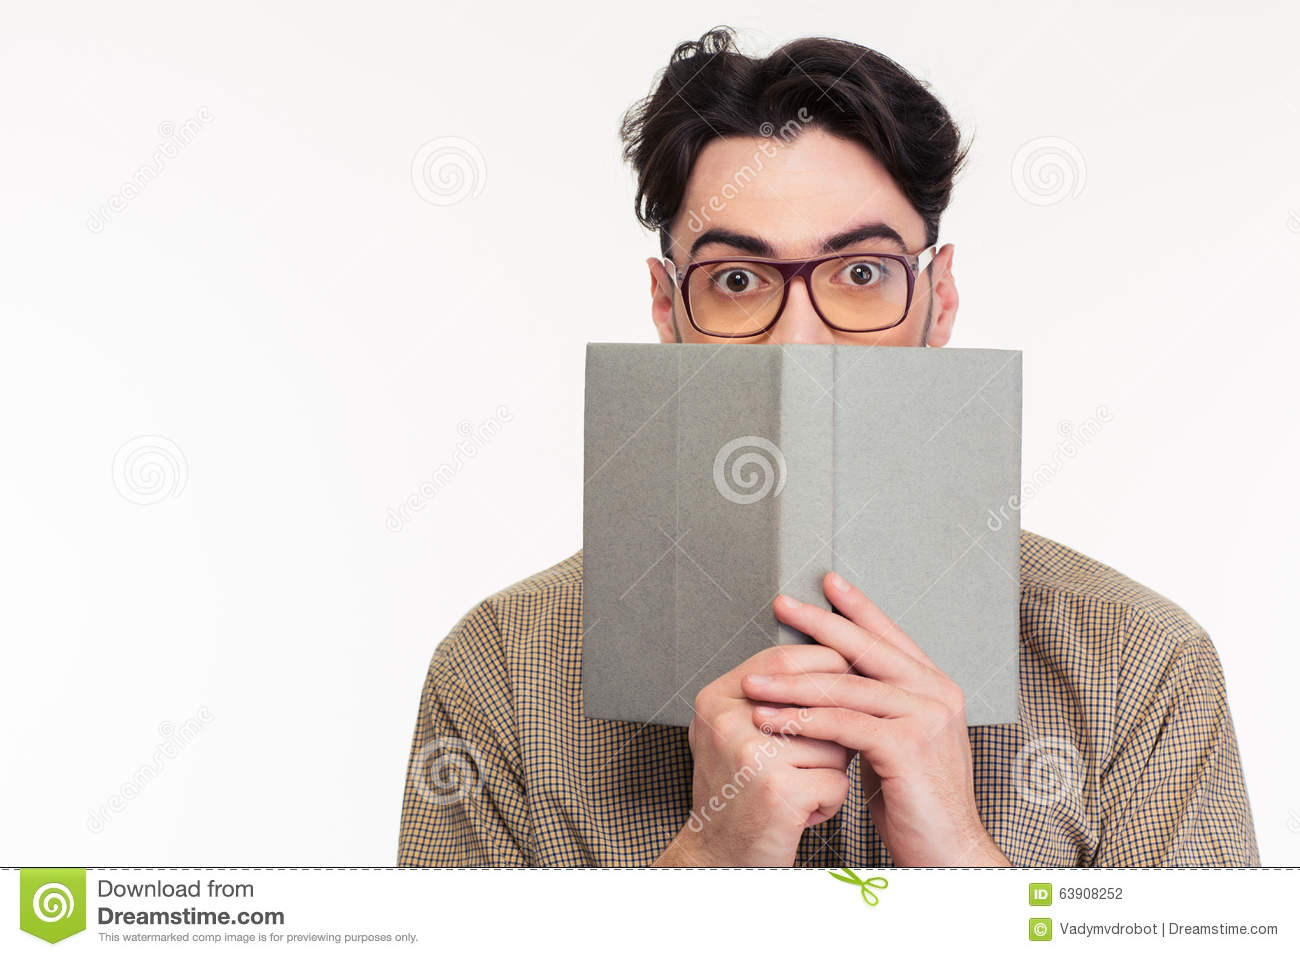 Book Covering Face : Young man covering his face with book